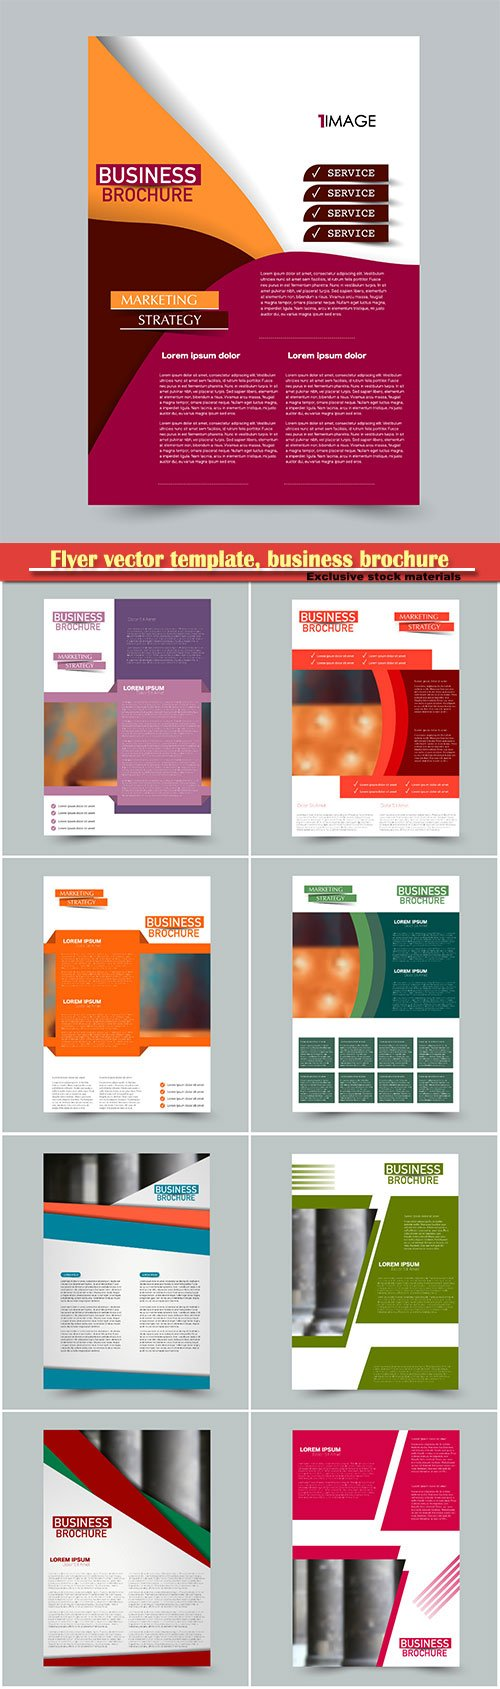 Flyer vector template, business brochure, magazine cover # 14